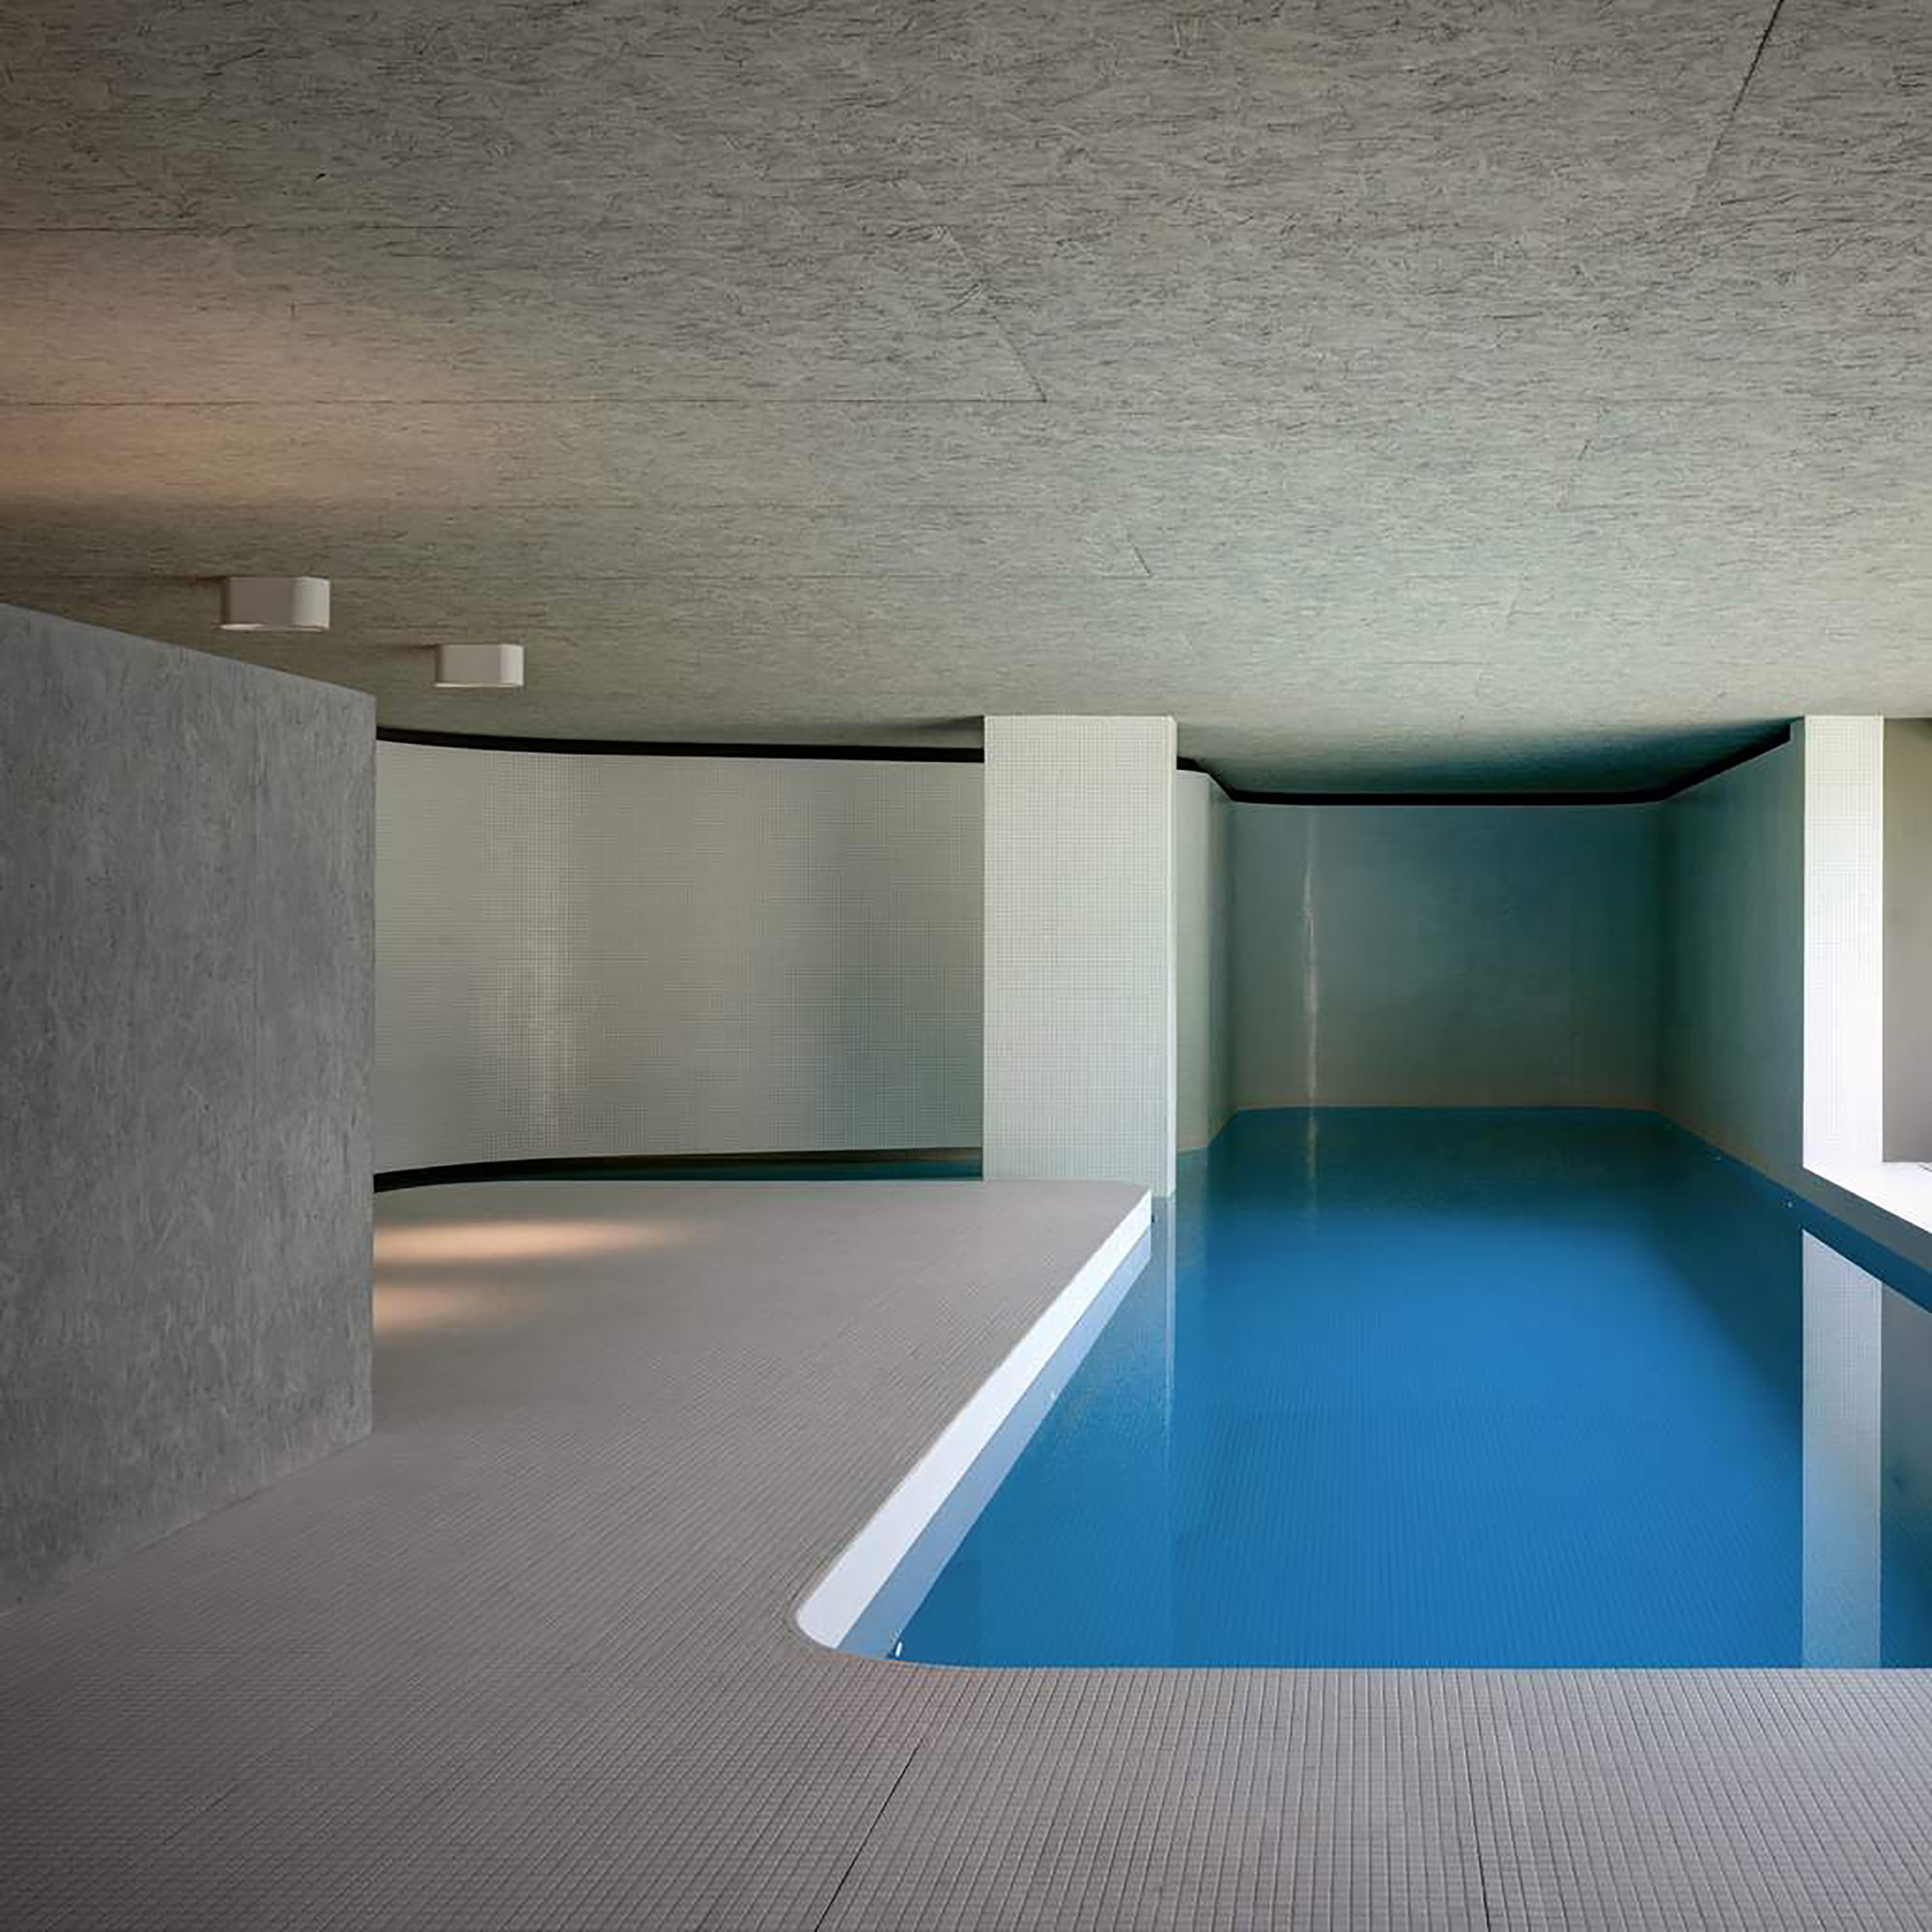 Roccolo's Swimming Pool / act_romegialli